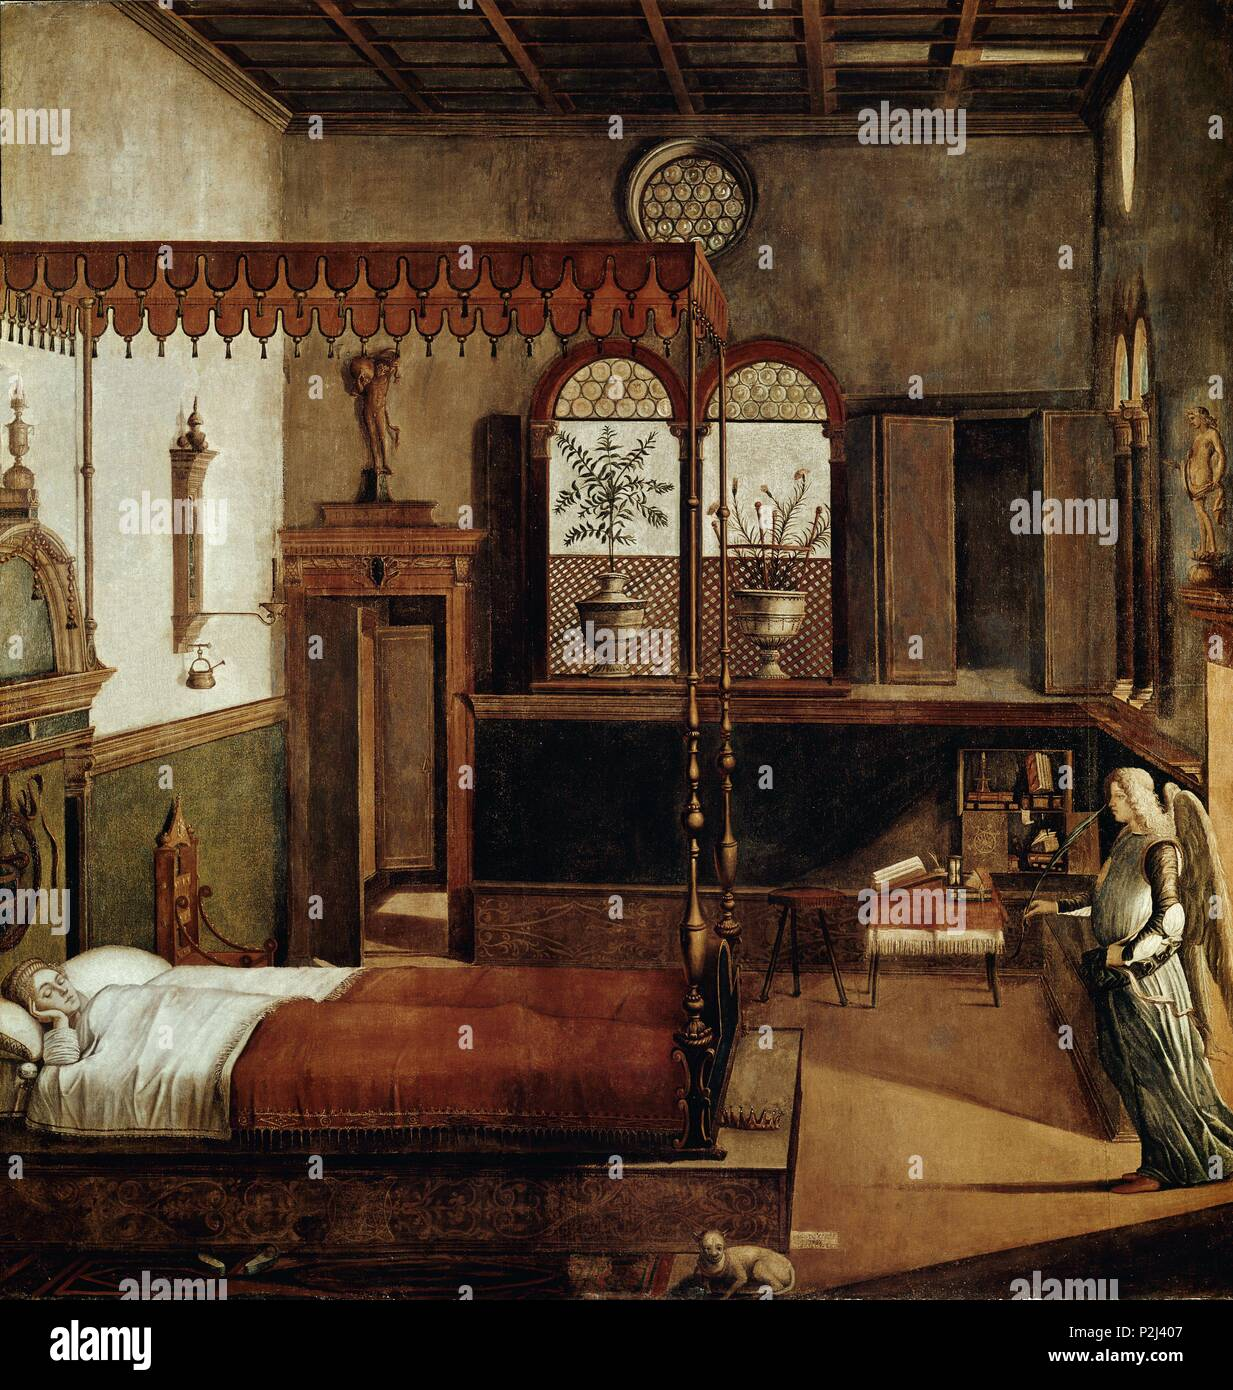 Dream of St. Ursula - 1495 - 273x265 cm - tempera on canvas. Author:  Vittore Carpaccio (c. 1460-1526). Location: ACADEMIA DE BELLAS ARTES,  VENEDIG, ITALIA.